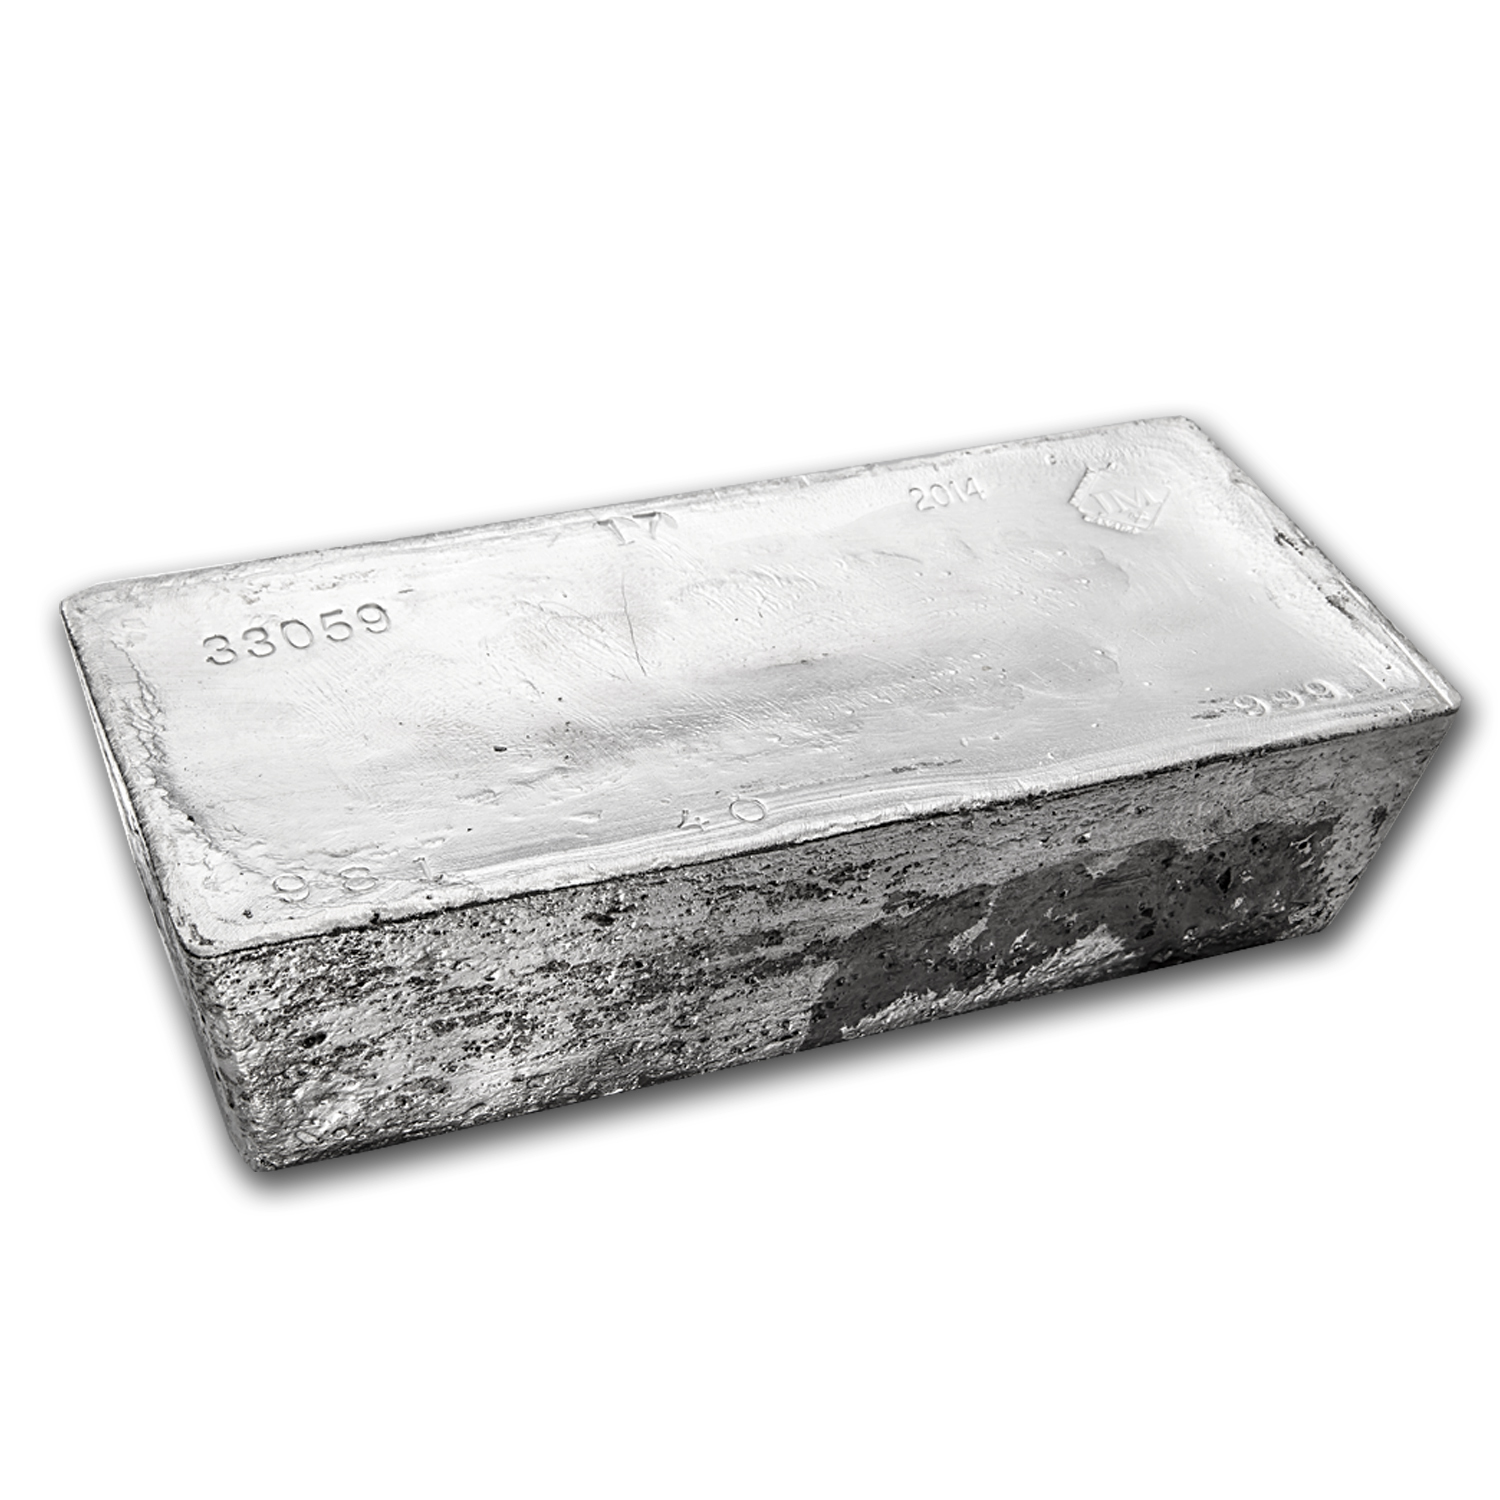 1028.225 oz Silver Bar - OPM (#1200605) (3/30)